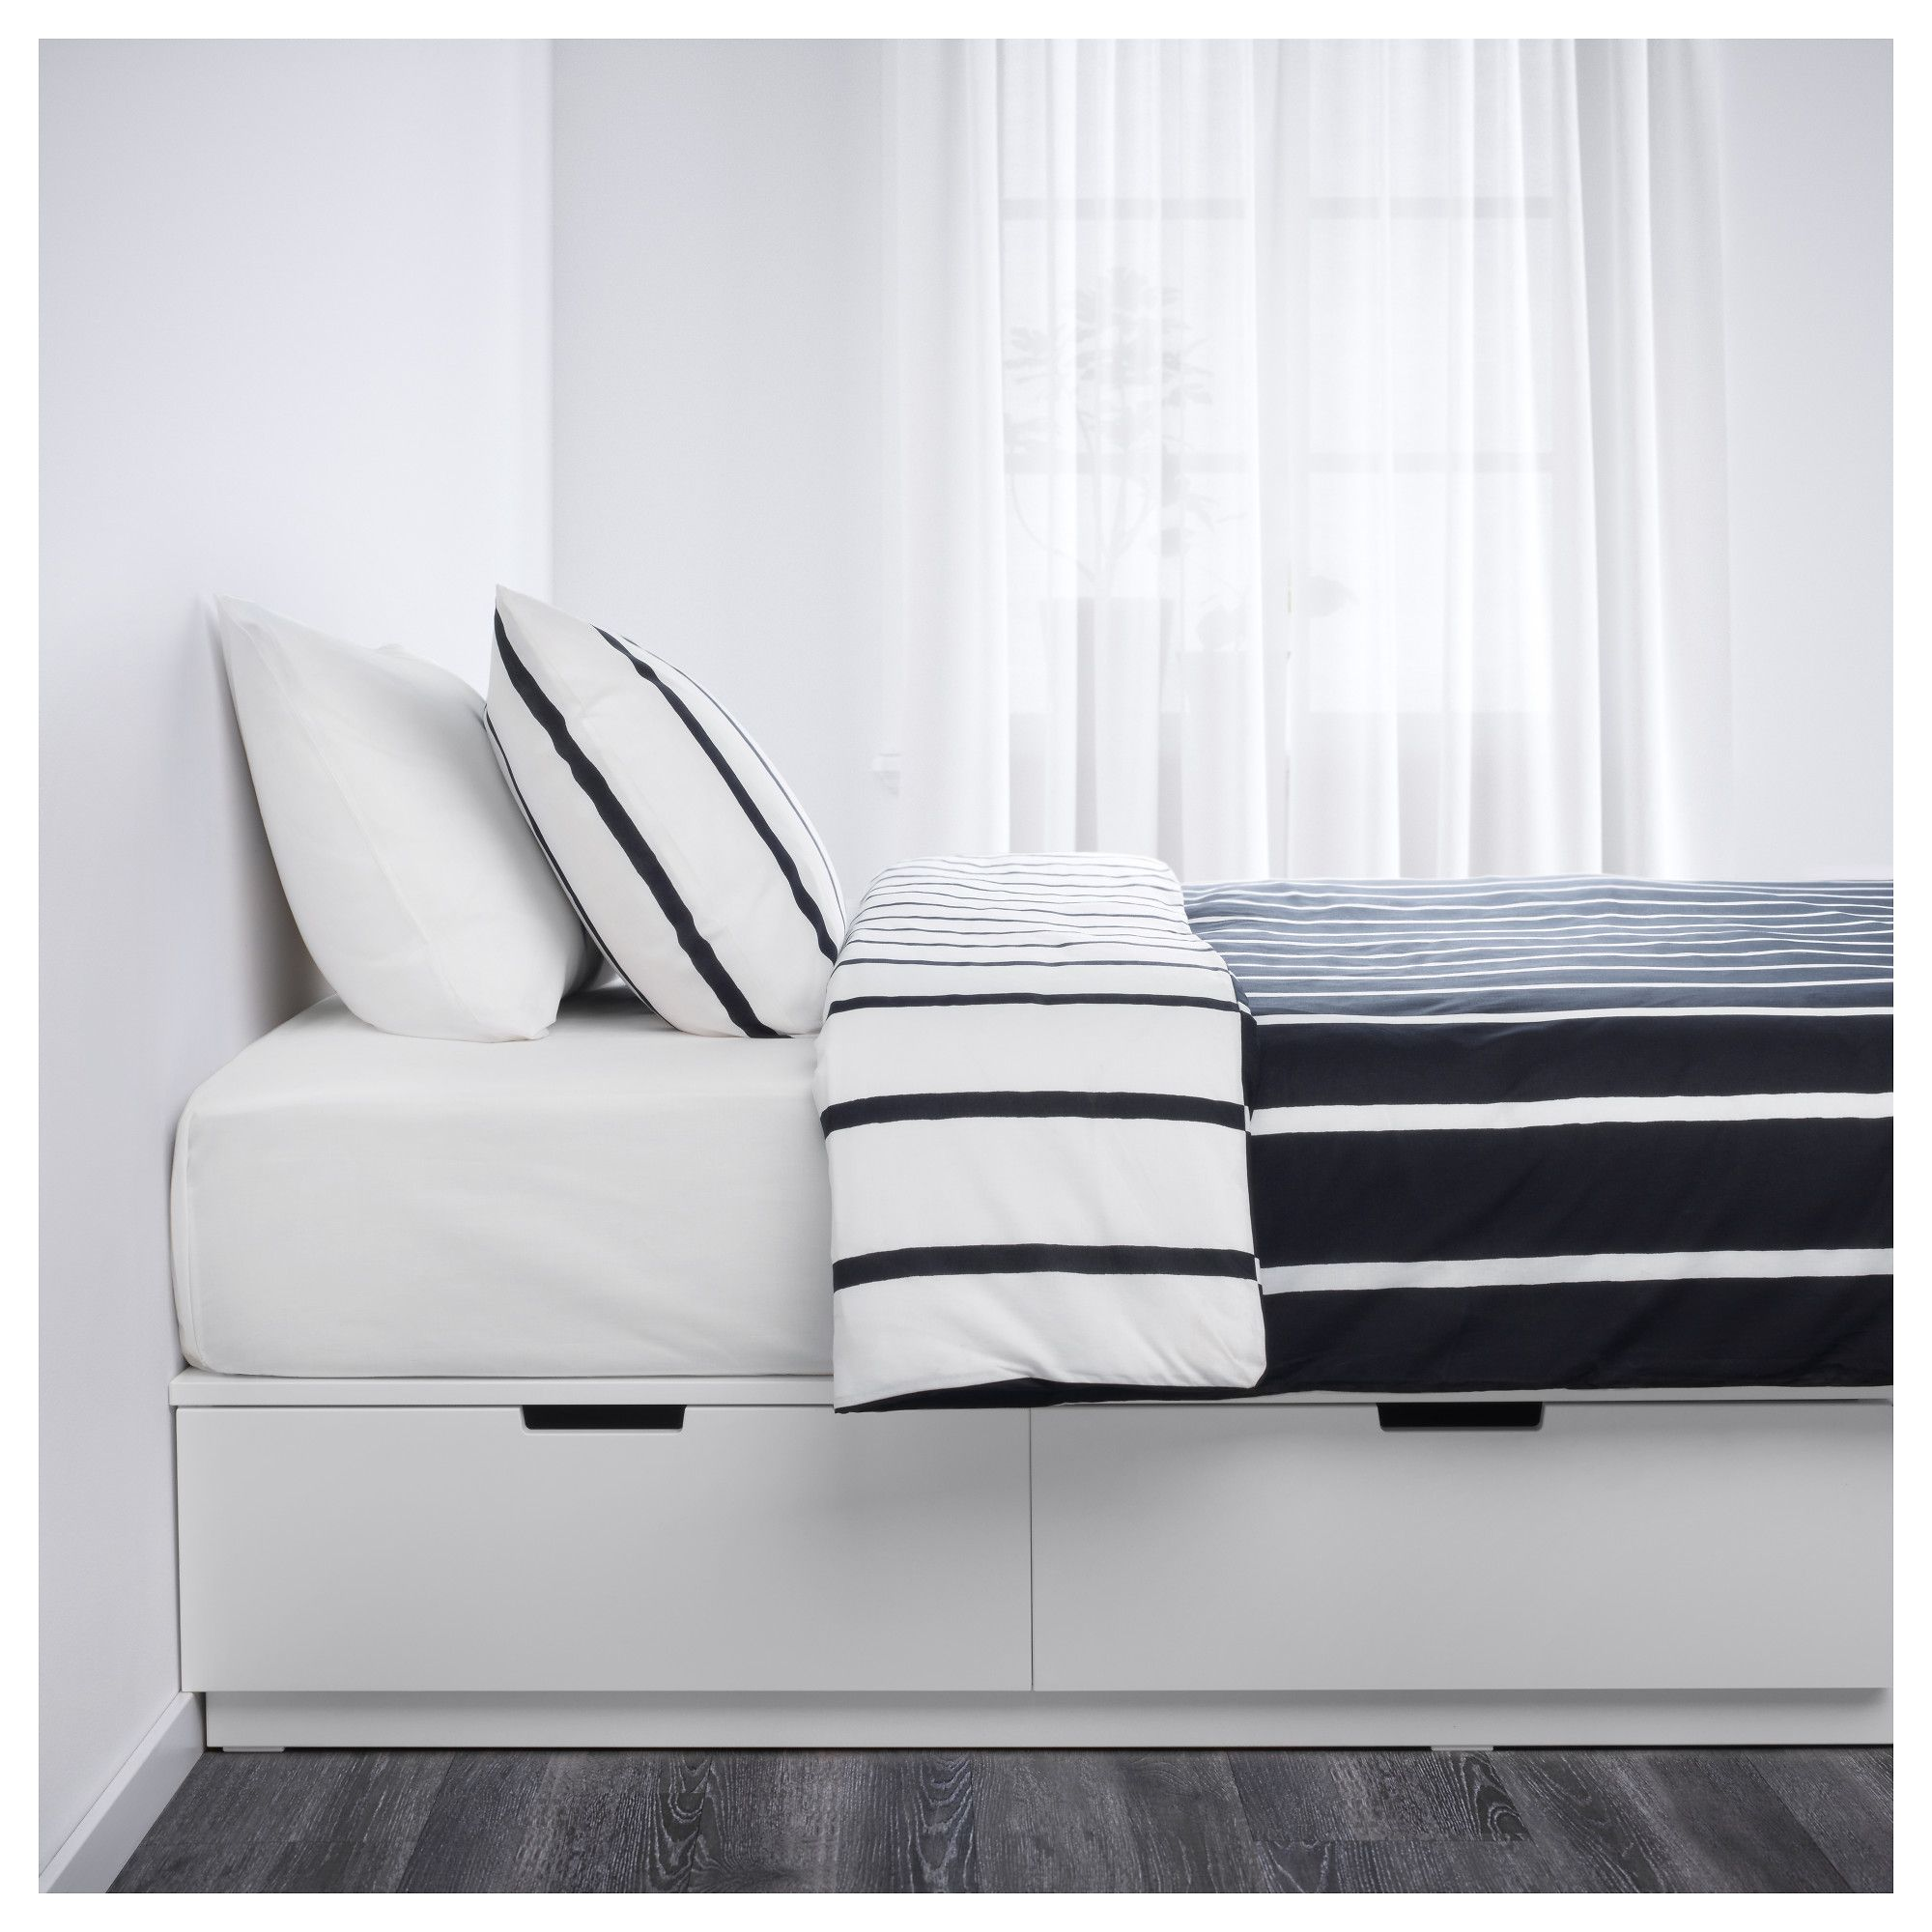 Nordli Bed Frame With Storage White Queen Bed Frame With Storage Bed Frame With Drawers Ikea Bed Frames